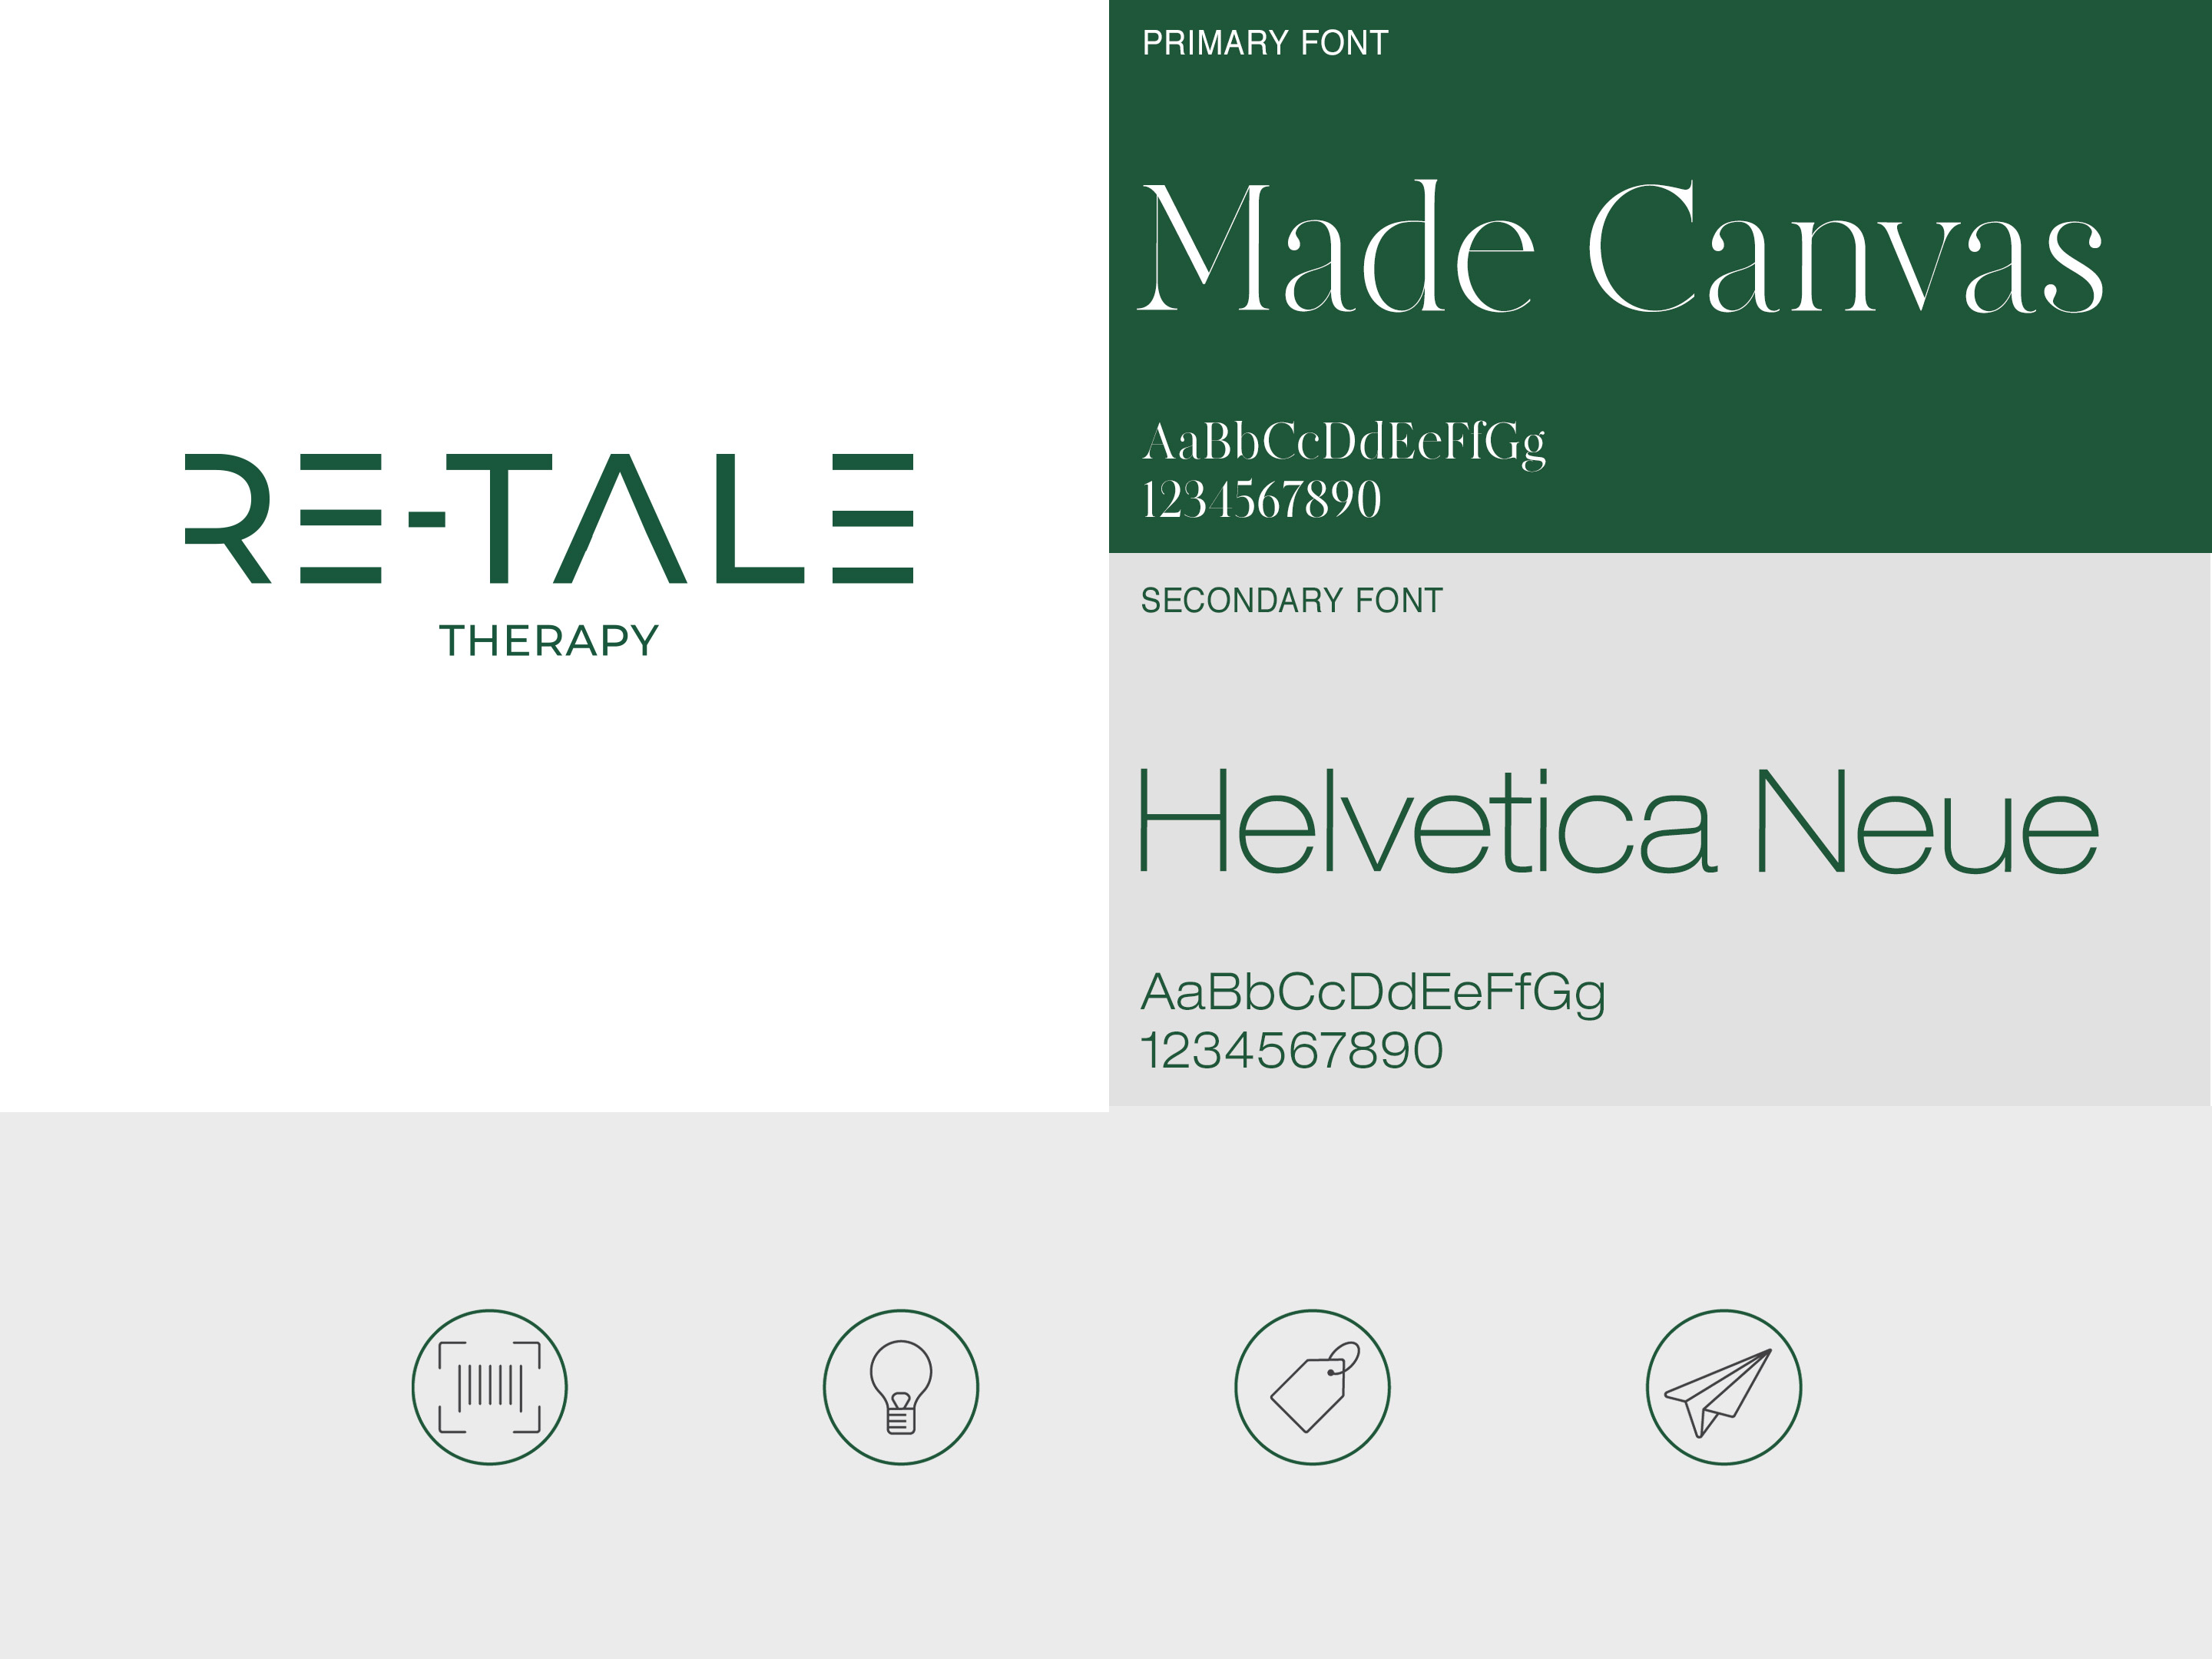 Aventus. Re-Tale Therapy. Brand overview of logo, typography and iconography.